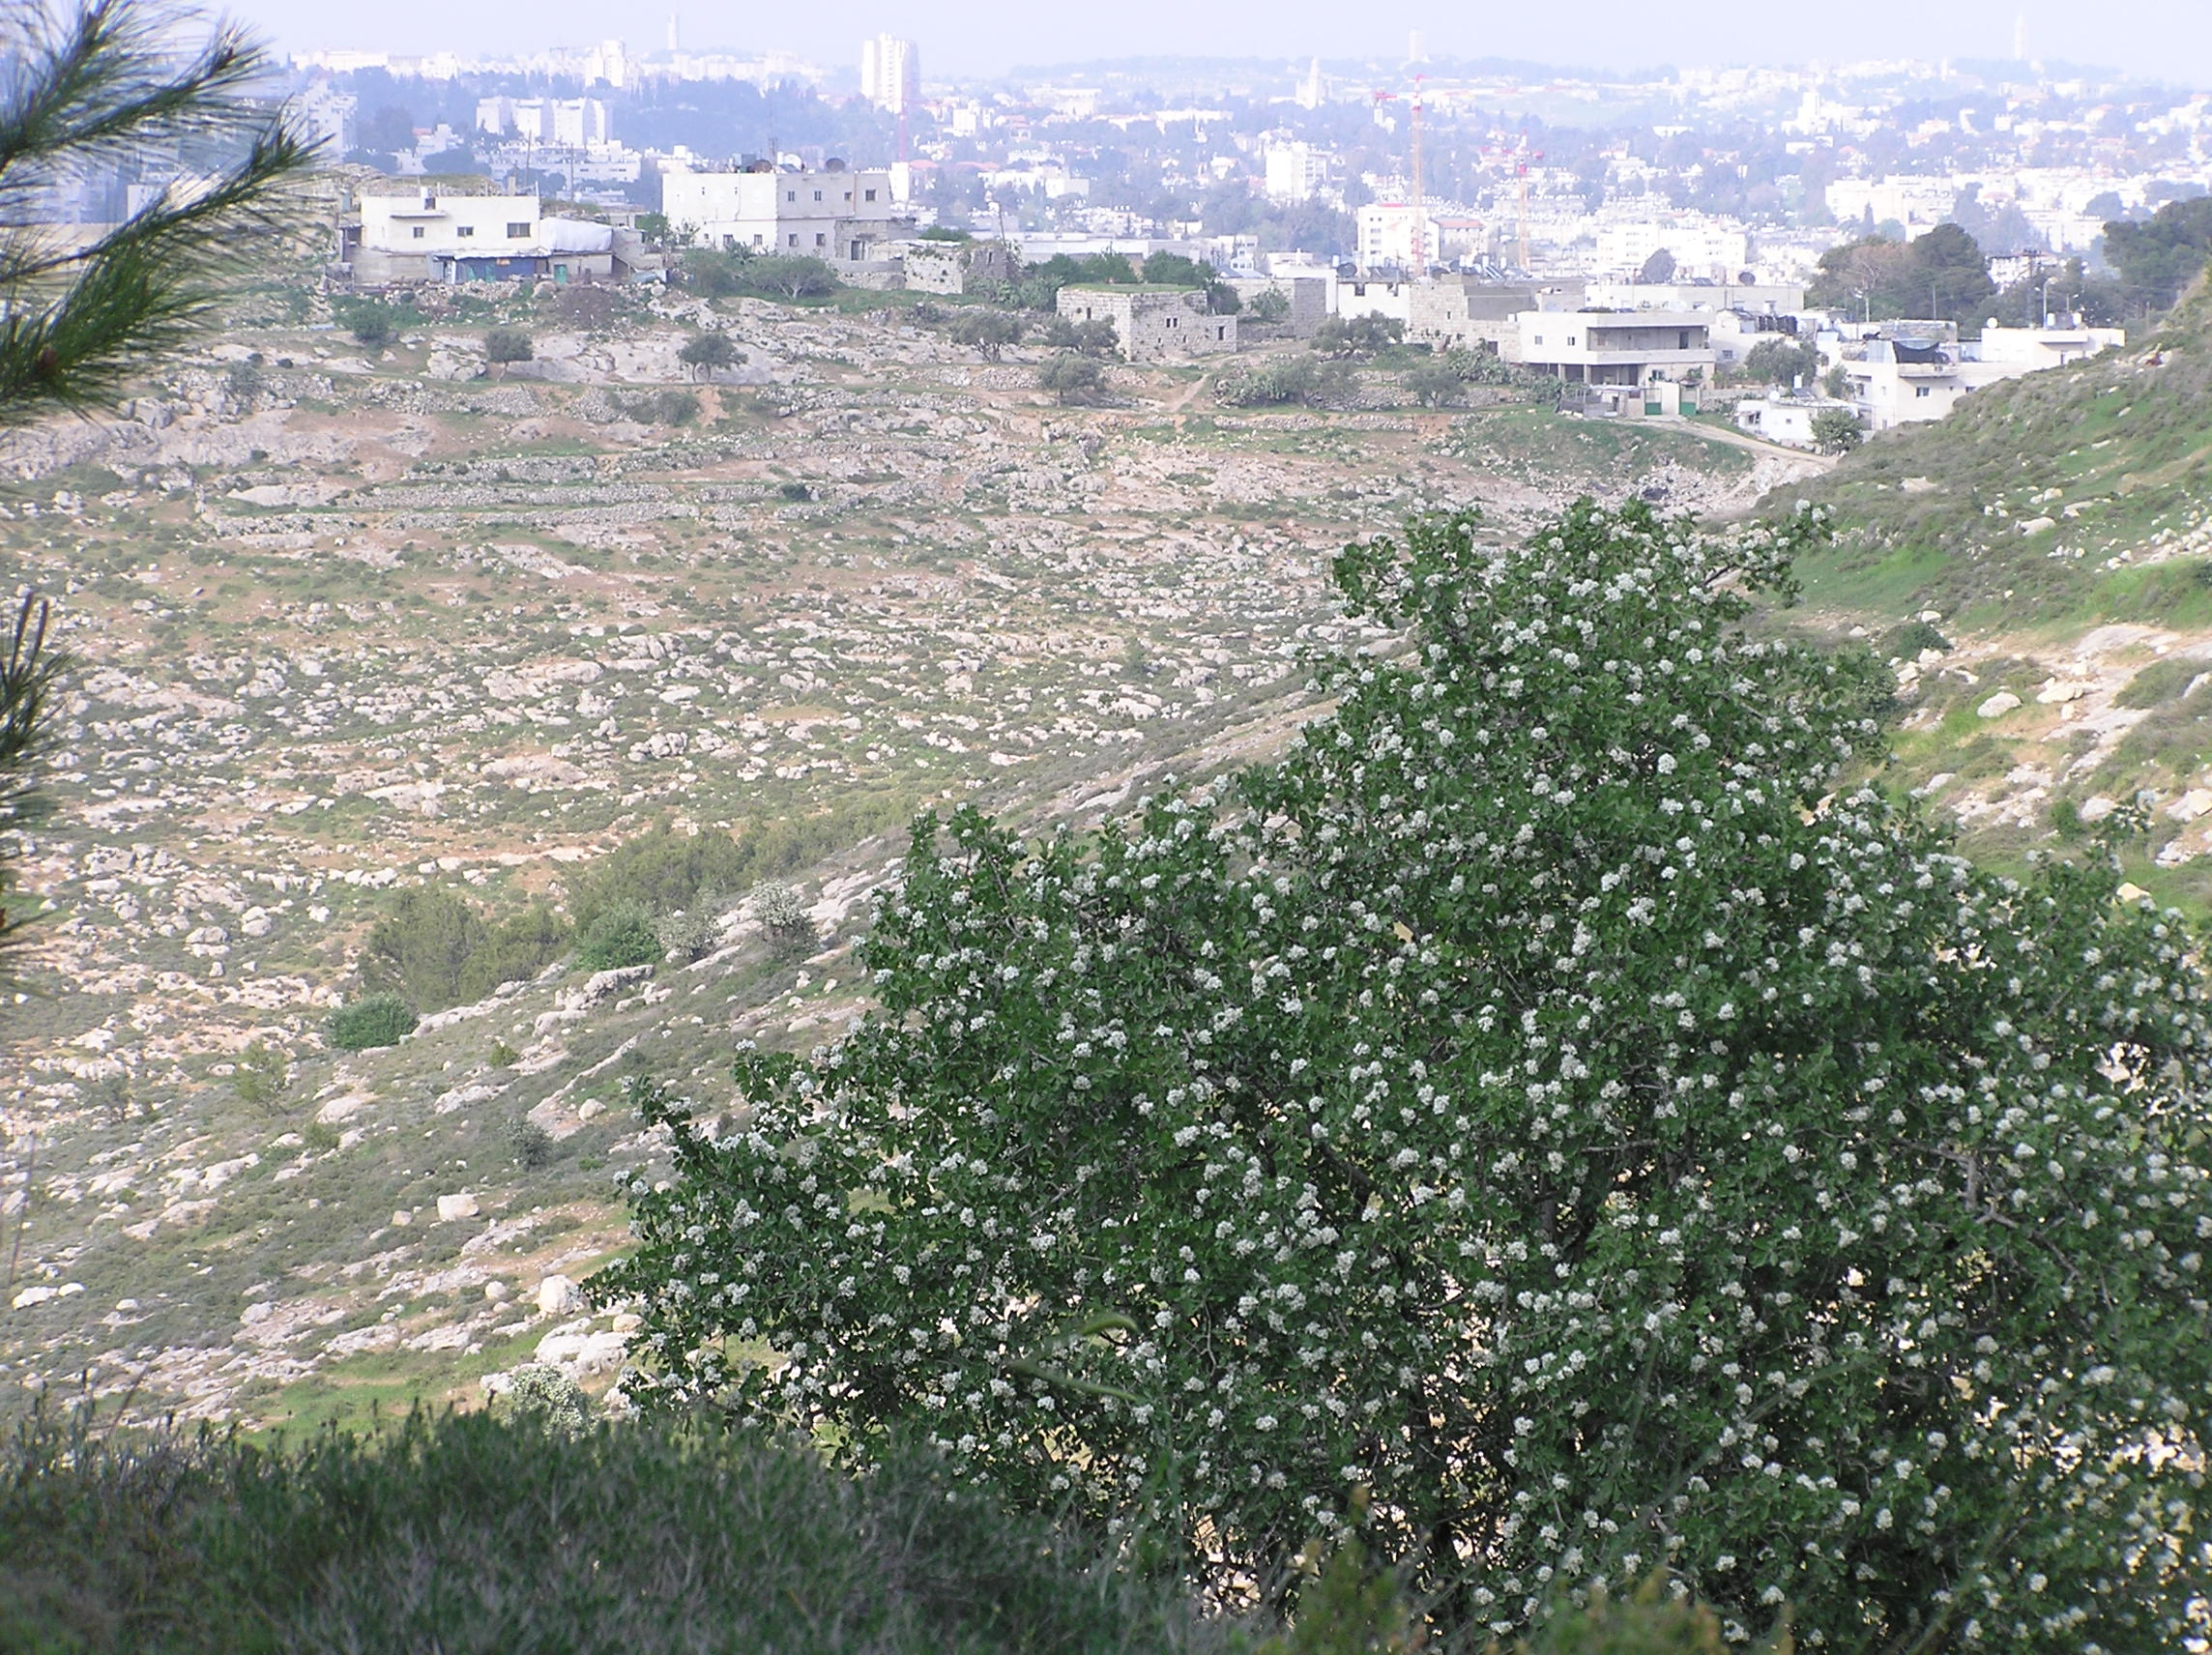 Sharafat - شرفات : A View Of Sharafat From El - Howarah/Khalit El-Taroud Area With Za'aroura In Full Bloom.